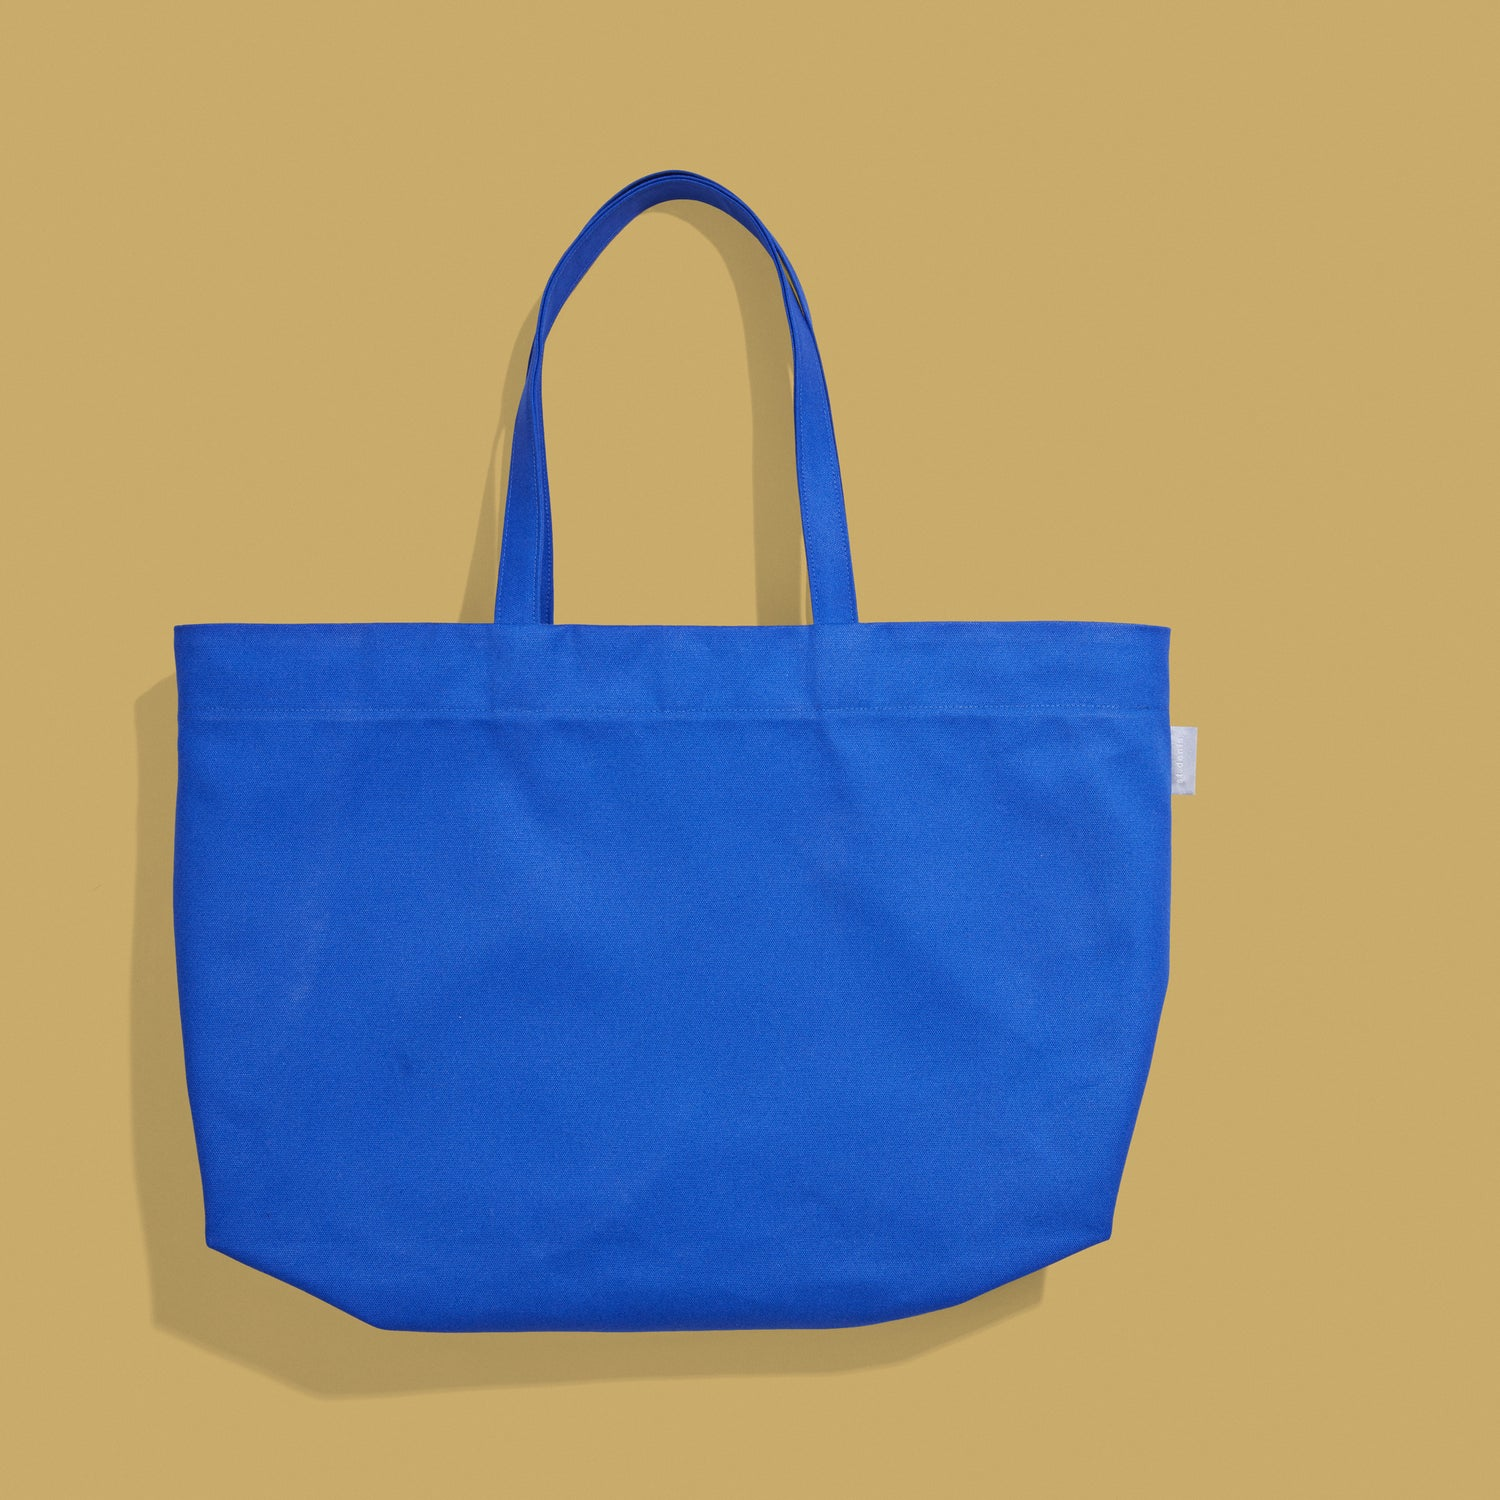 Sold out<br>Tote oversize Couleur bleu